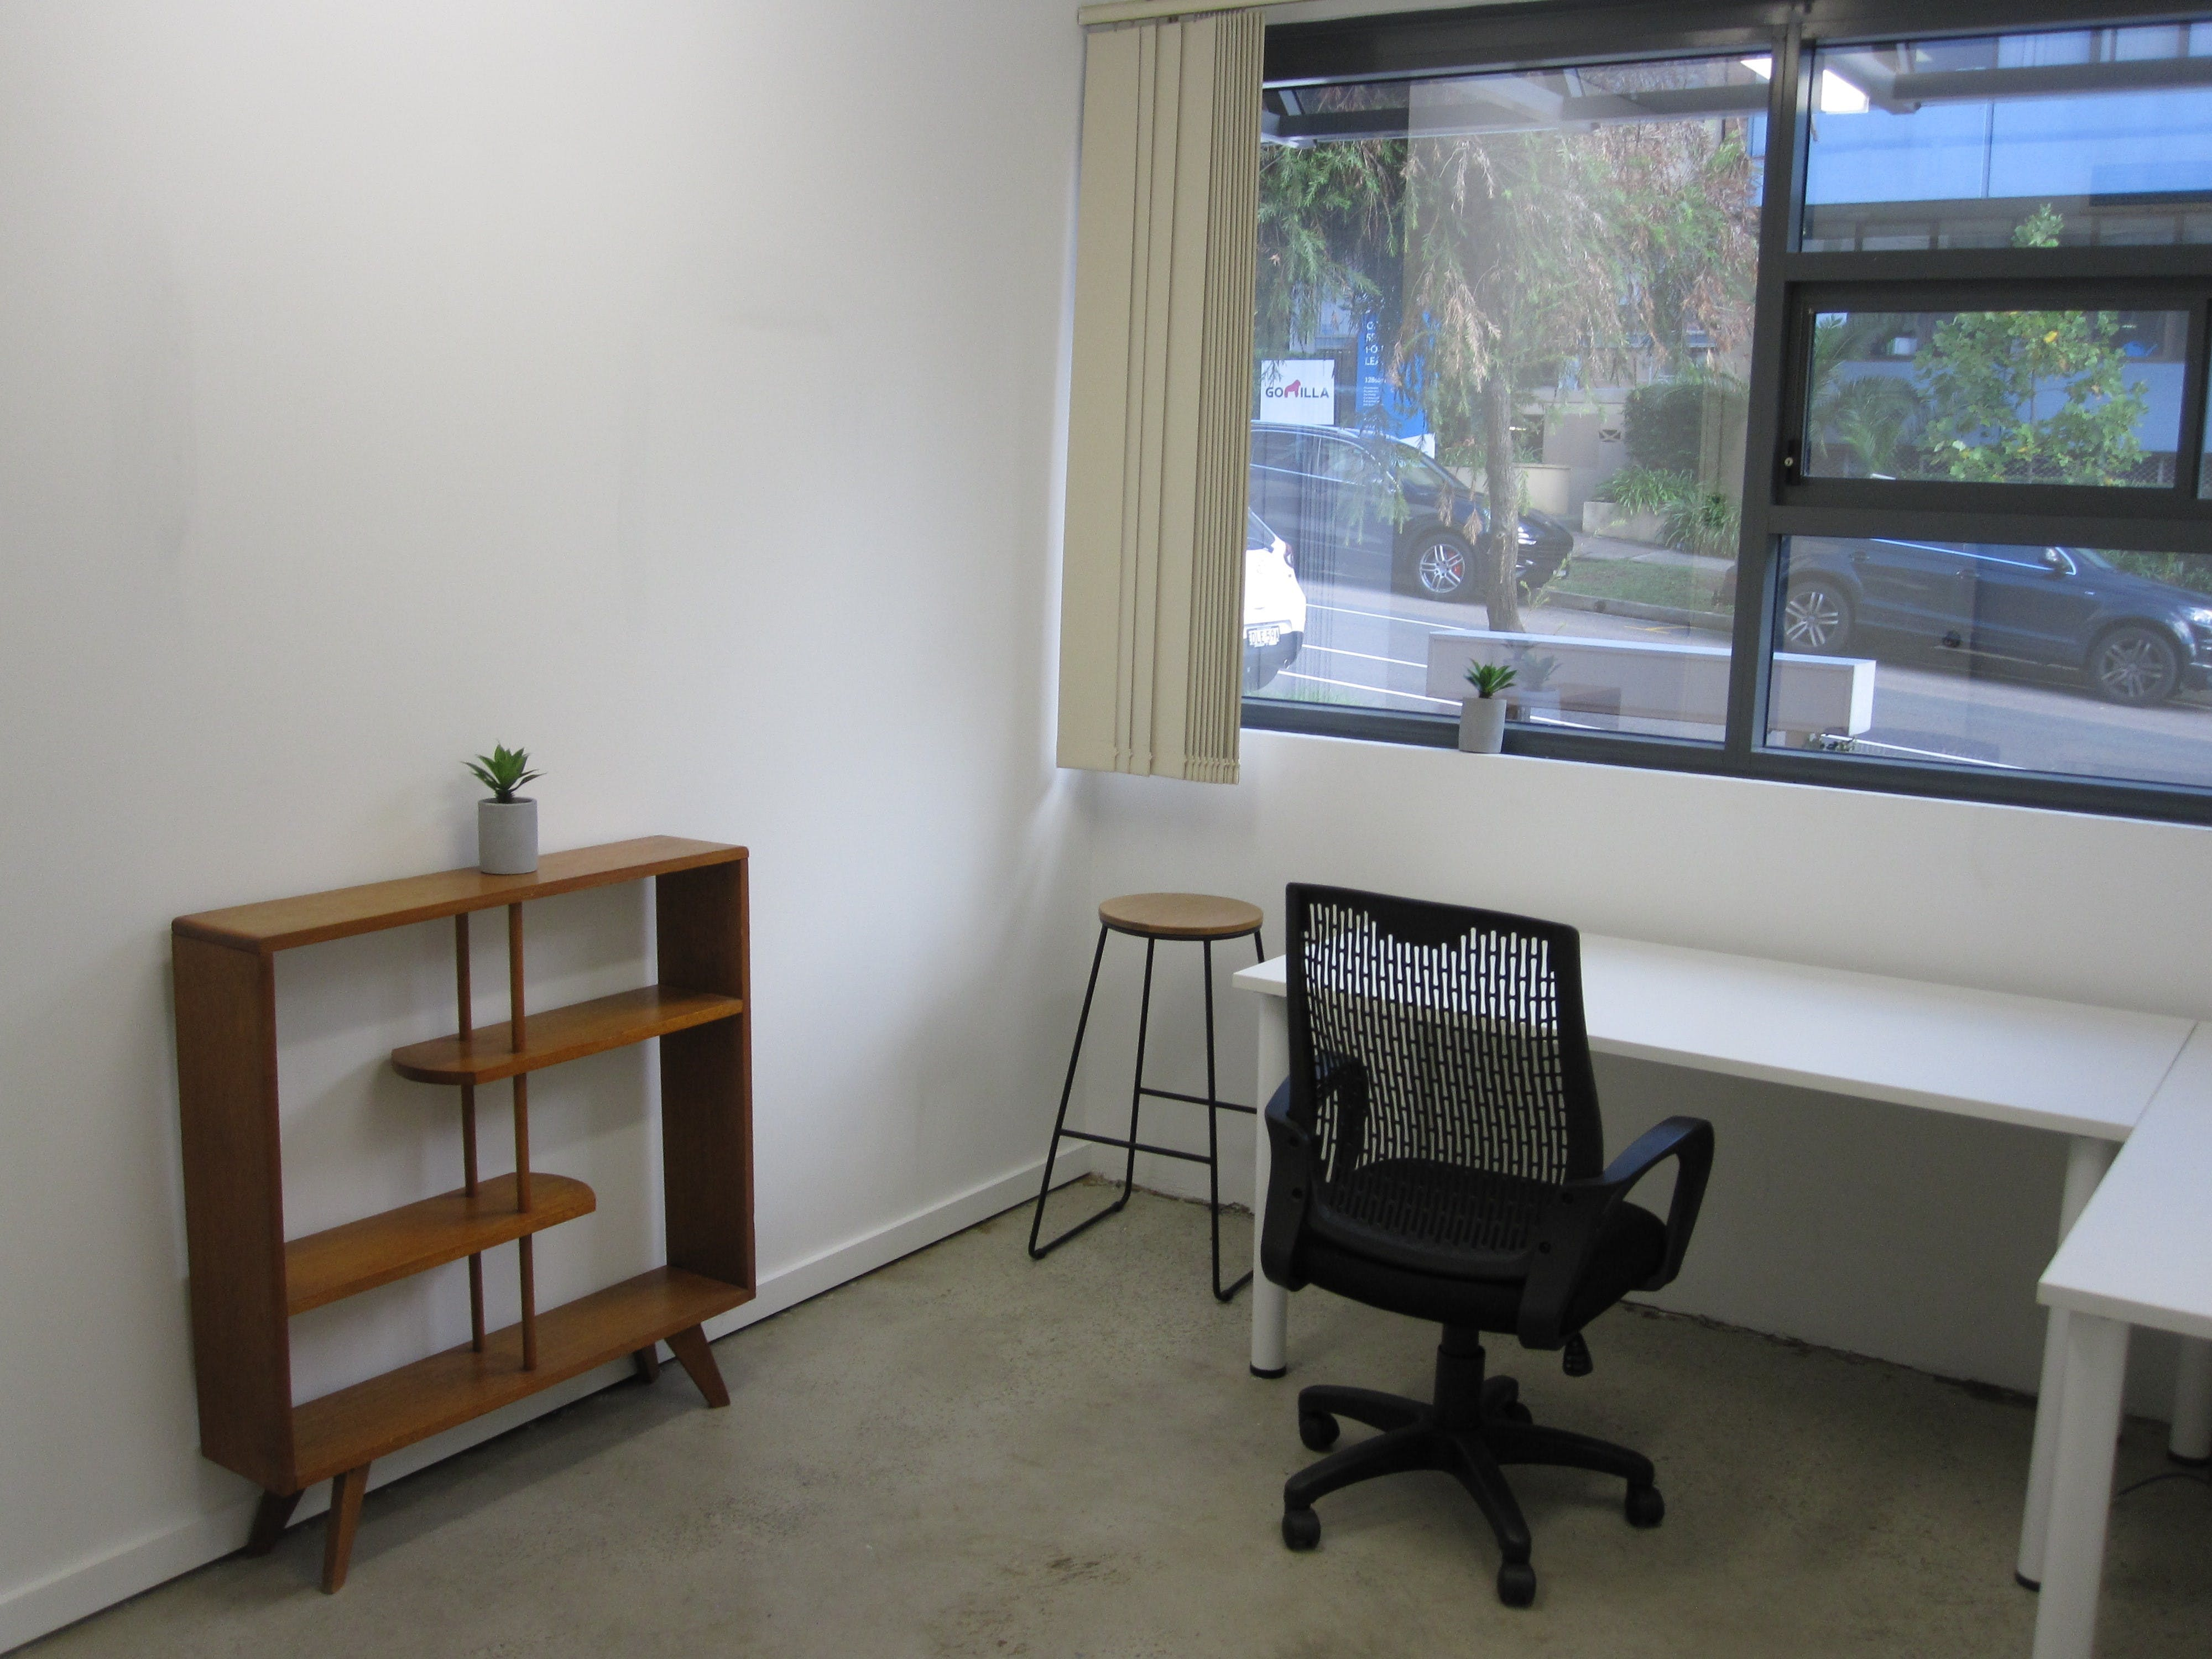 Office 8, private office at A23 Coworking Space, image 1